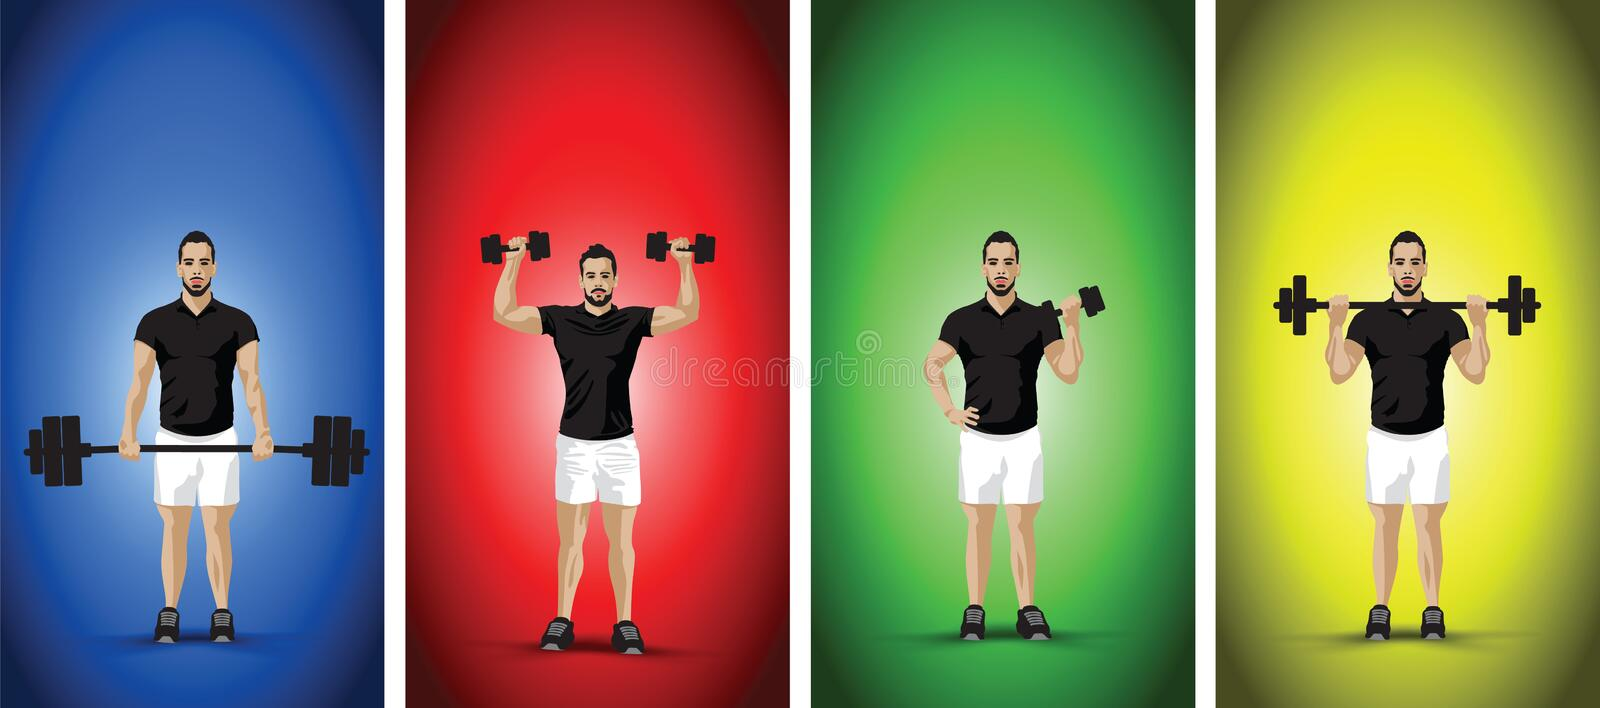 Training dumbbells men. Blue shirted man training with dumbbells stock illustration